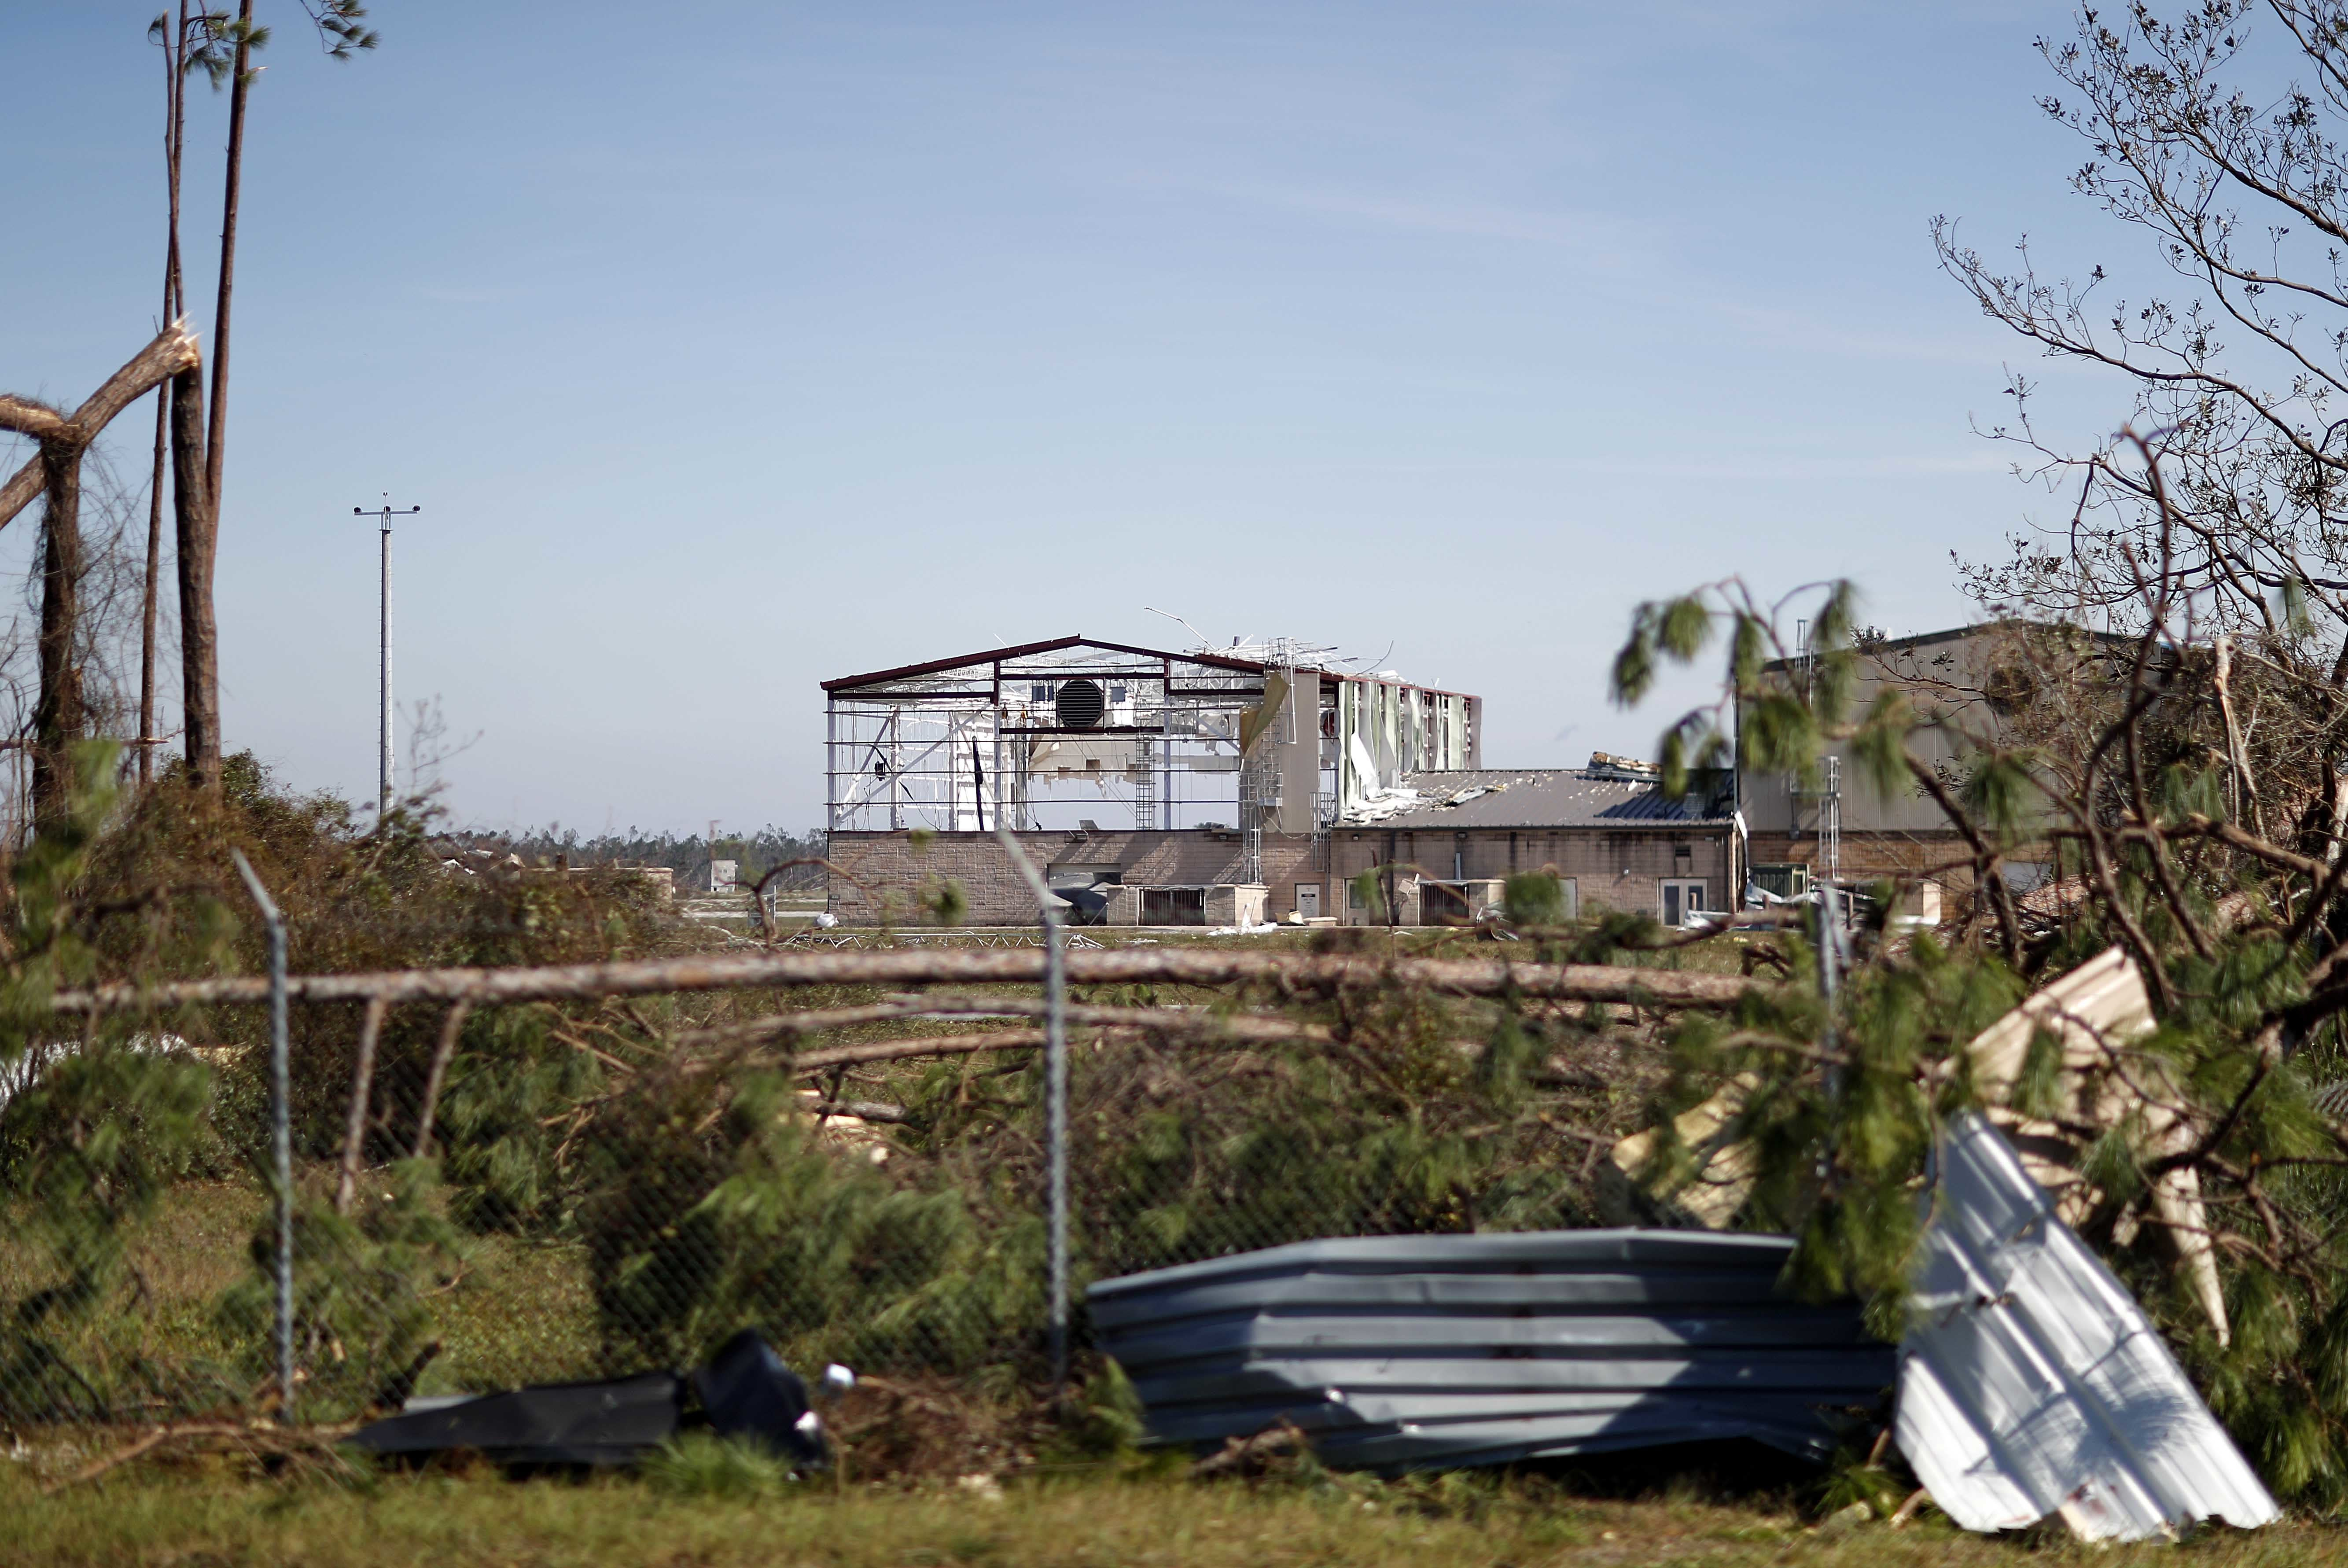 An airplane hanger at Tyndall Air Force Base is damaged from hurricane Michael in Panama City, Fla., Thursday, Oct. 11, 2018. The devastation inflicted by Hurricane Michael came into focus Thursday with rows upon rows of homes found smashed to pieces, and rescue crews began making their way into the stricken areas in hopes of accounting for hundreds of people who may have stayed behind. (AP Photo/David Goldman)